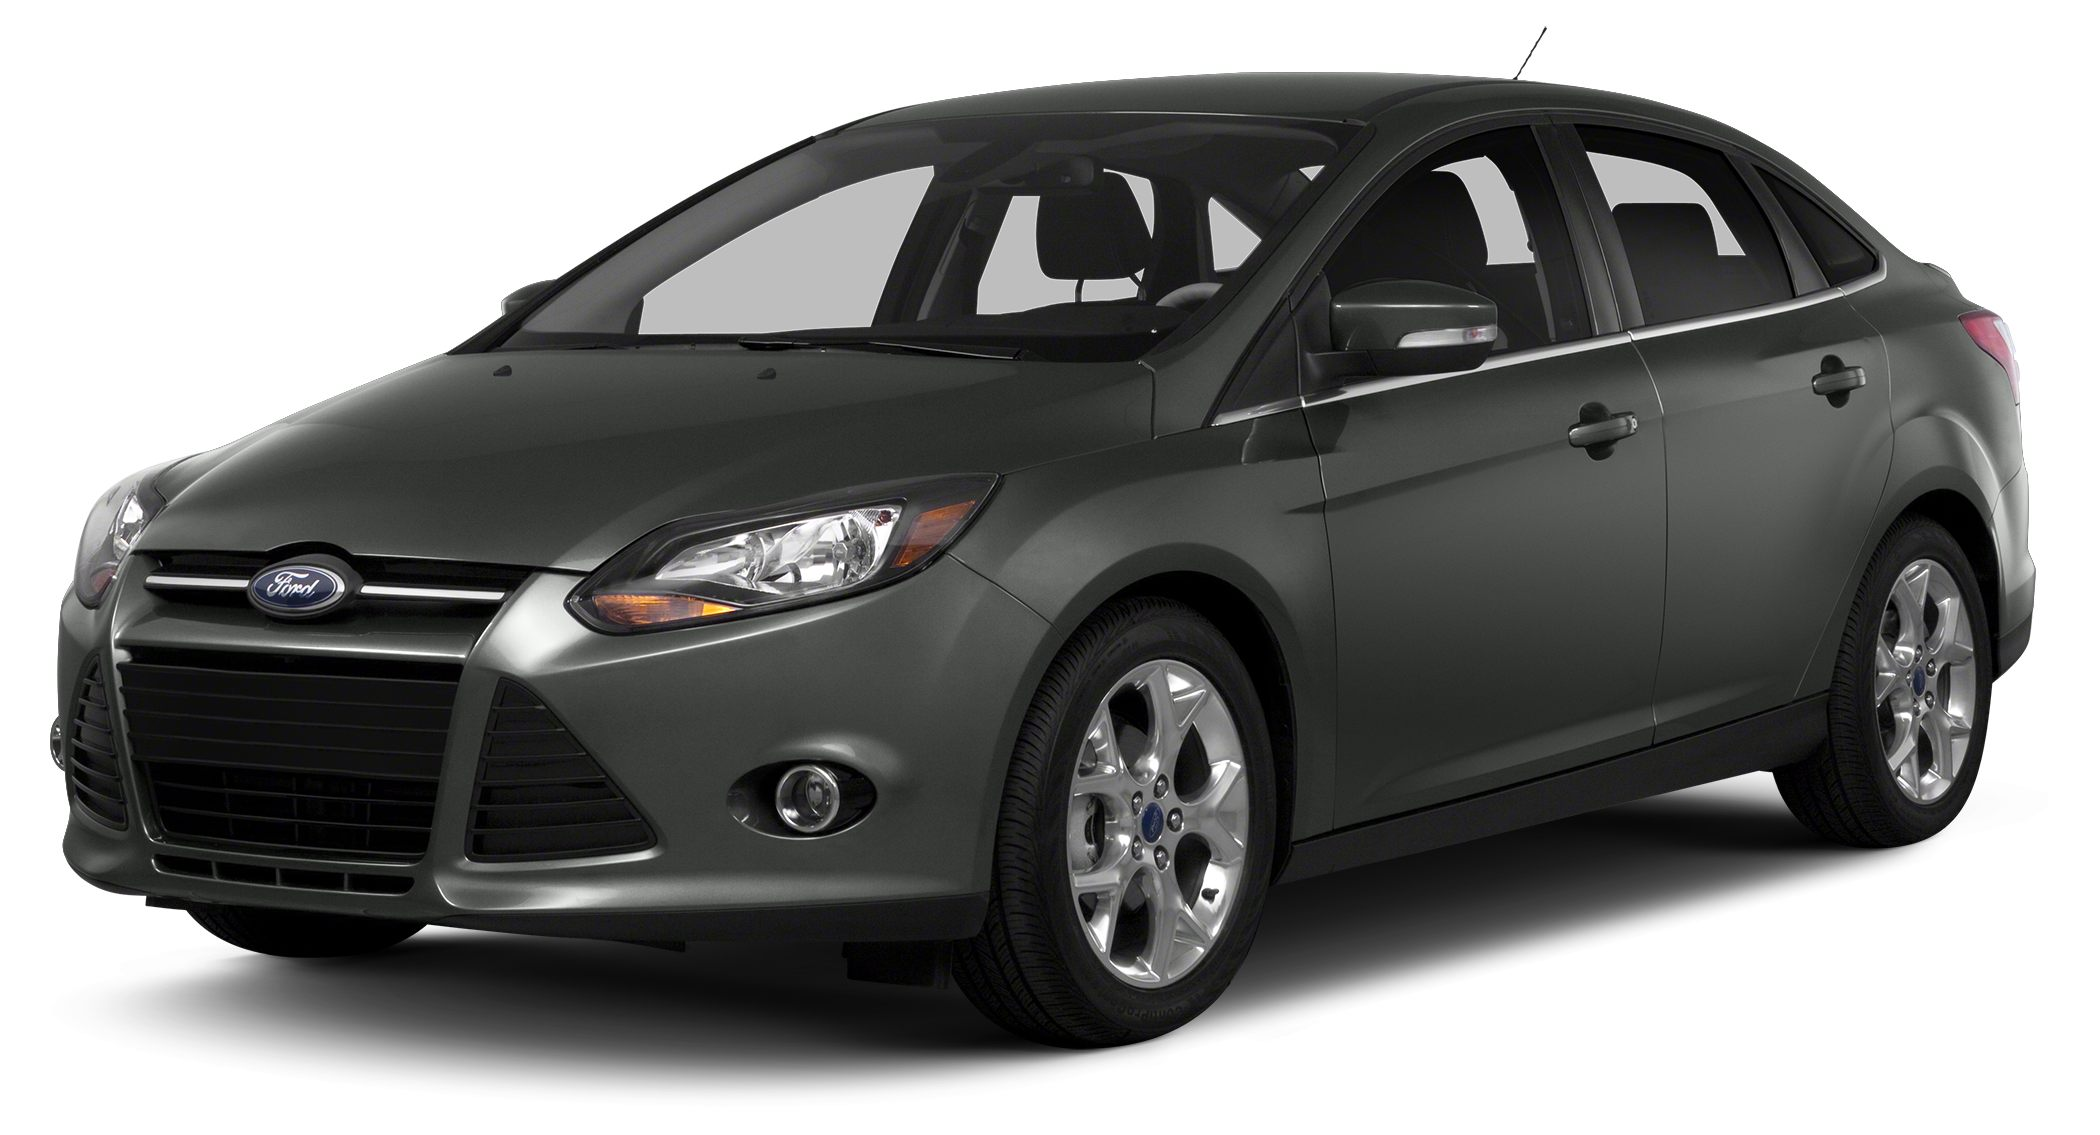 2014 Ford Focus Titanium Miles 11Color Sterling Gray Metallic Stock F304716 VIN 1FADP3J22EL2